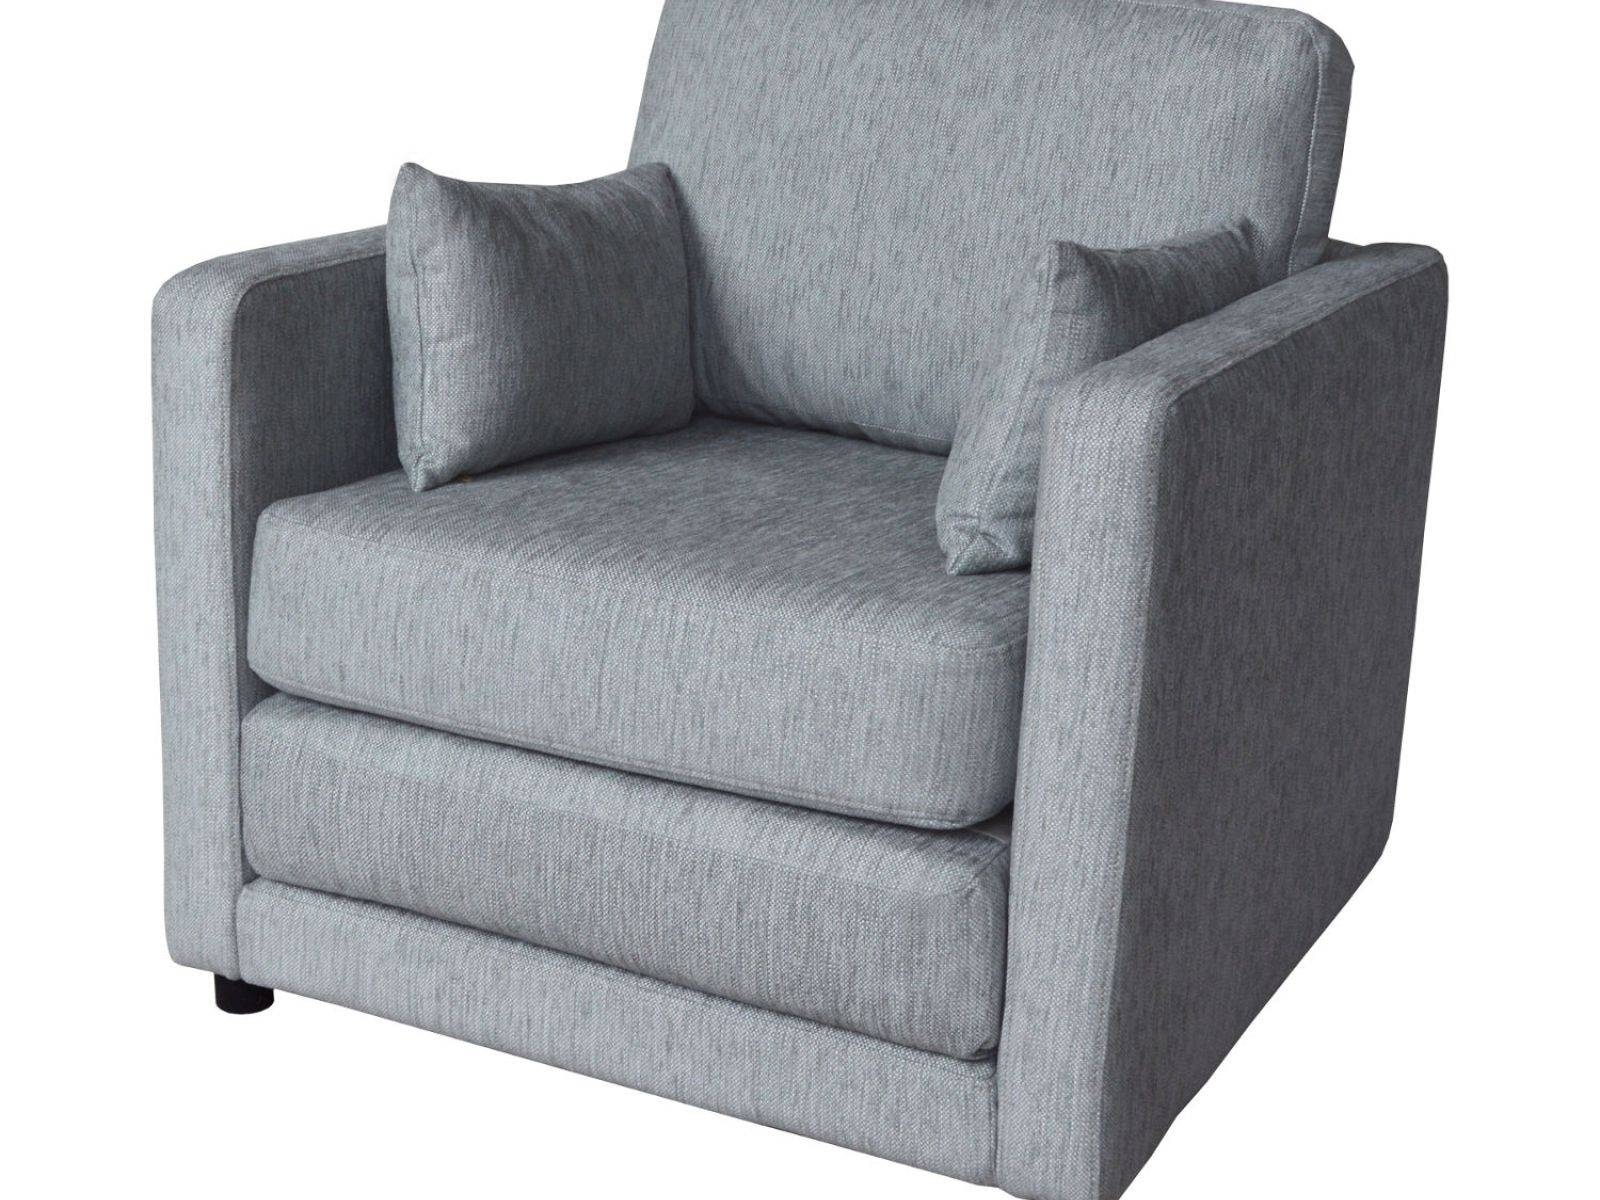 Sofas Center : Single Sofa Chair 8167Sl Kgal Sl1500 Top Best Comfy for Sofa Chairs For Bedroom (Image 15 of 15)